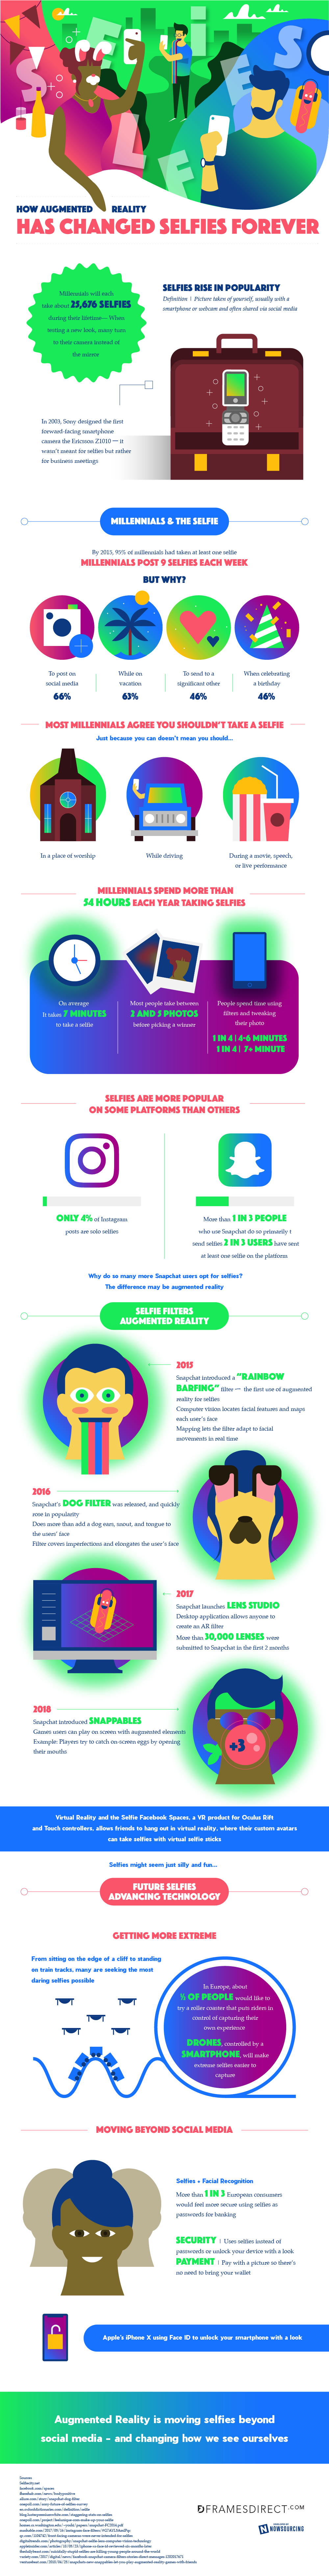 Selfies and Augmented Reality by the Numbers - Infographic